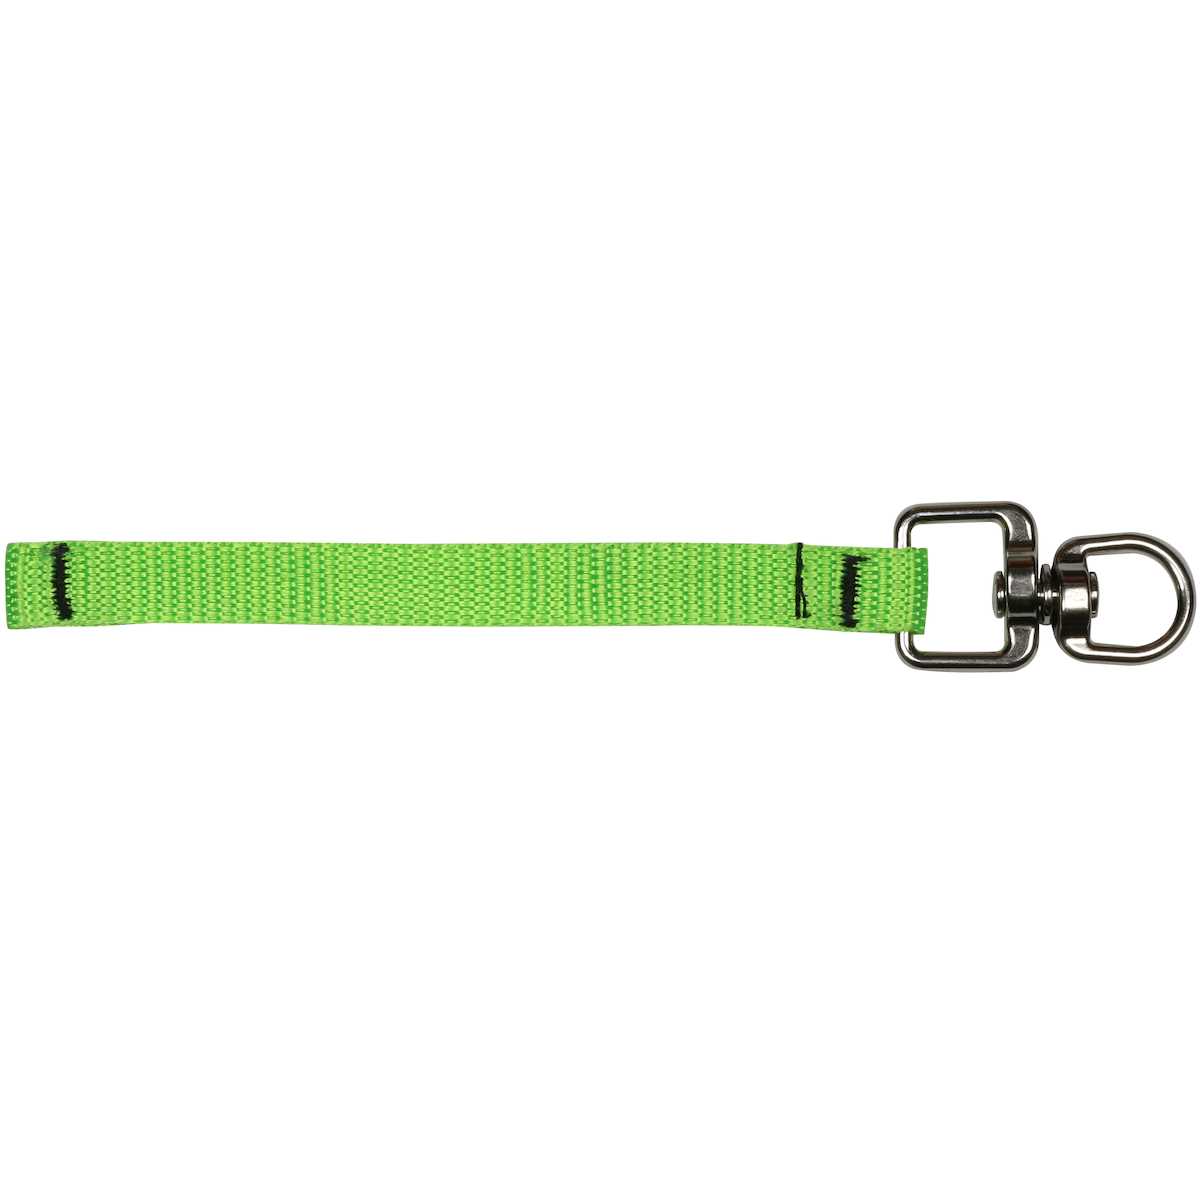 """Webbing Tool Connector 5.5"""" - 3 lbs. maximum load limit - Retail Packaged, Green, OS"""